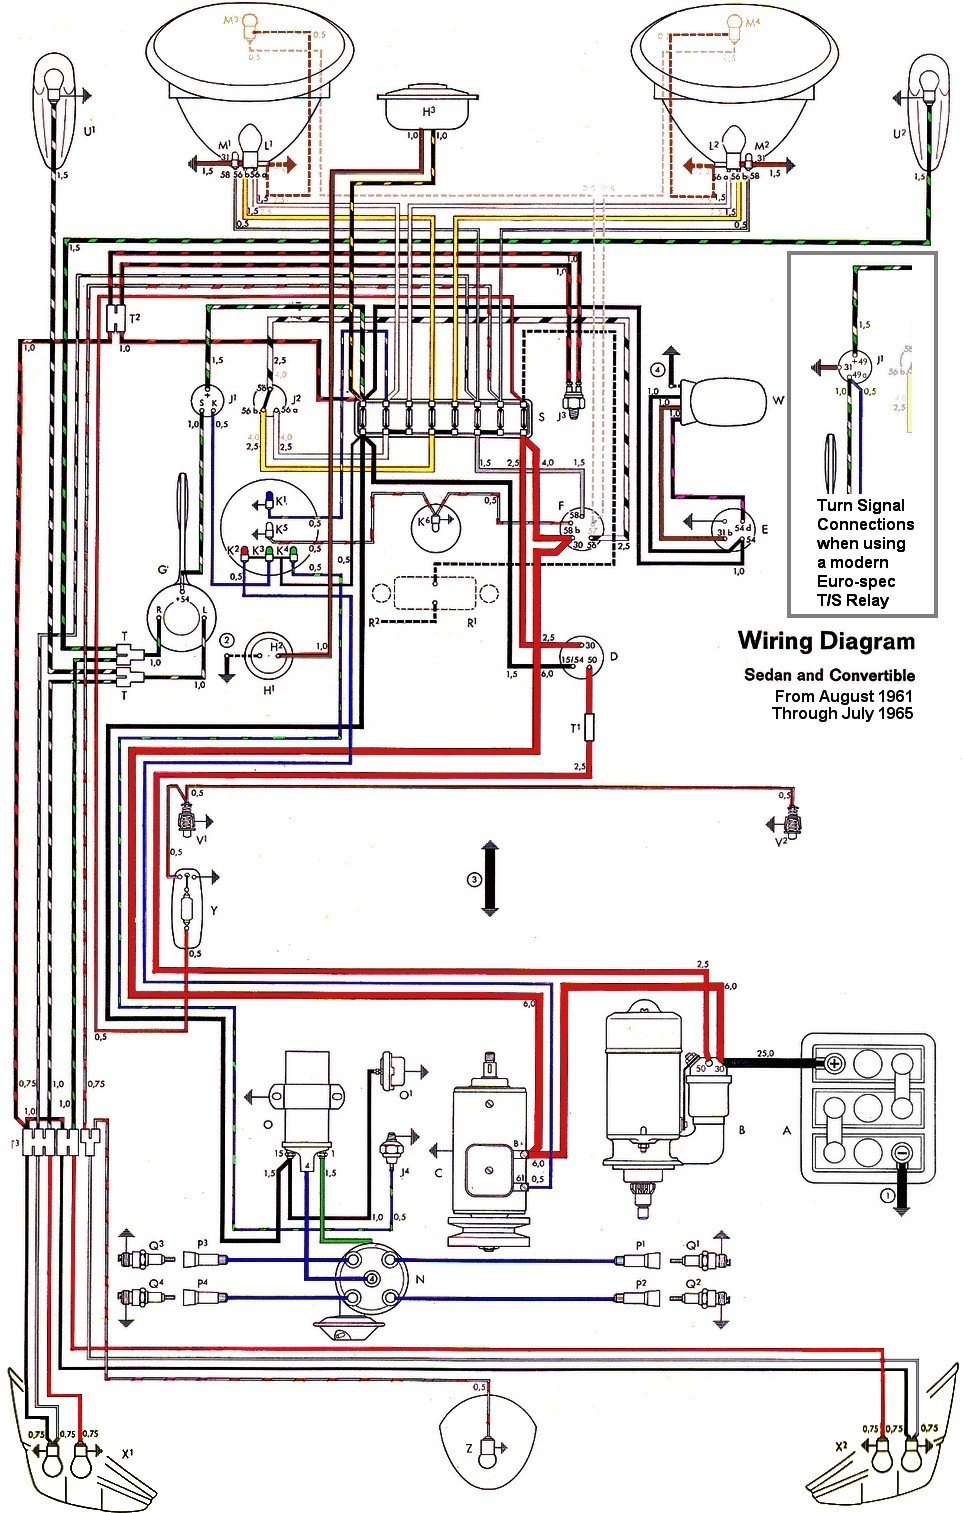 volkswagen wiring diagram volkswagen wiring diagrams online thesamba com type 1 wiring diagrams